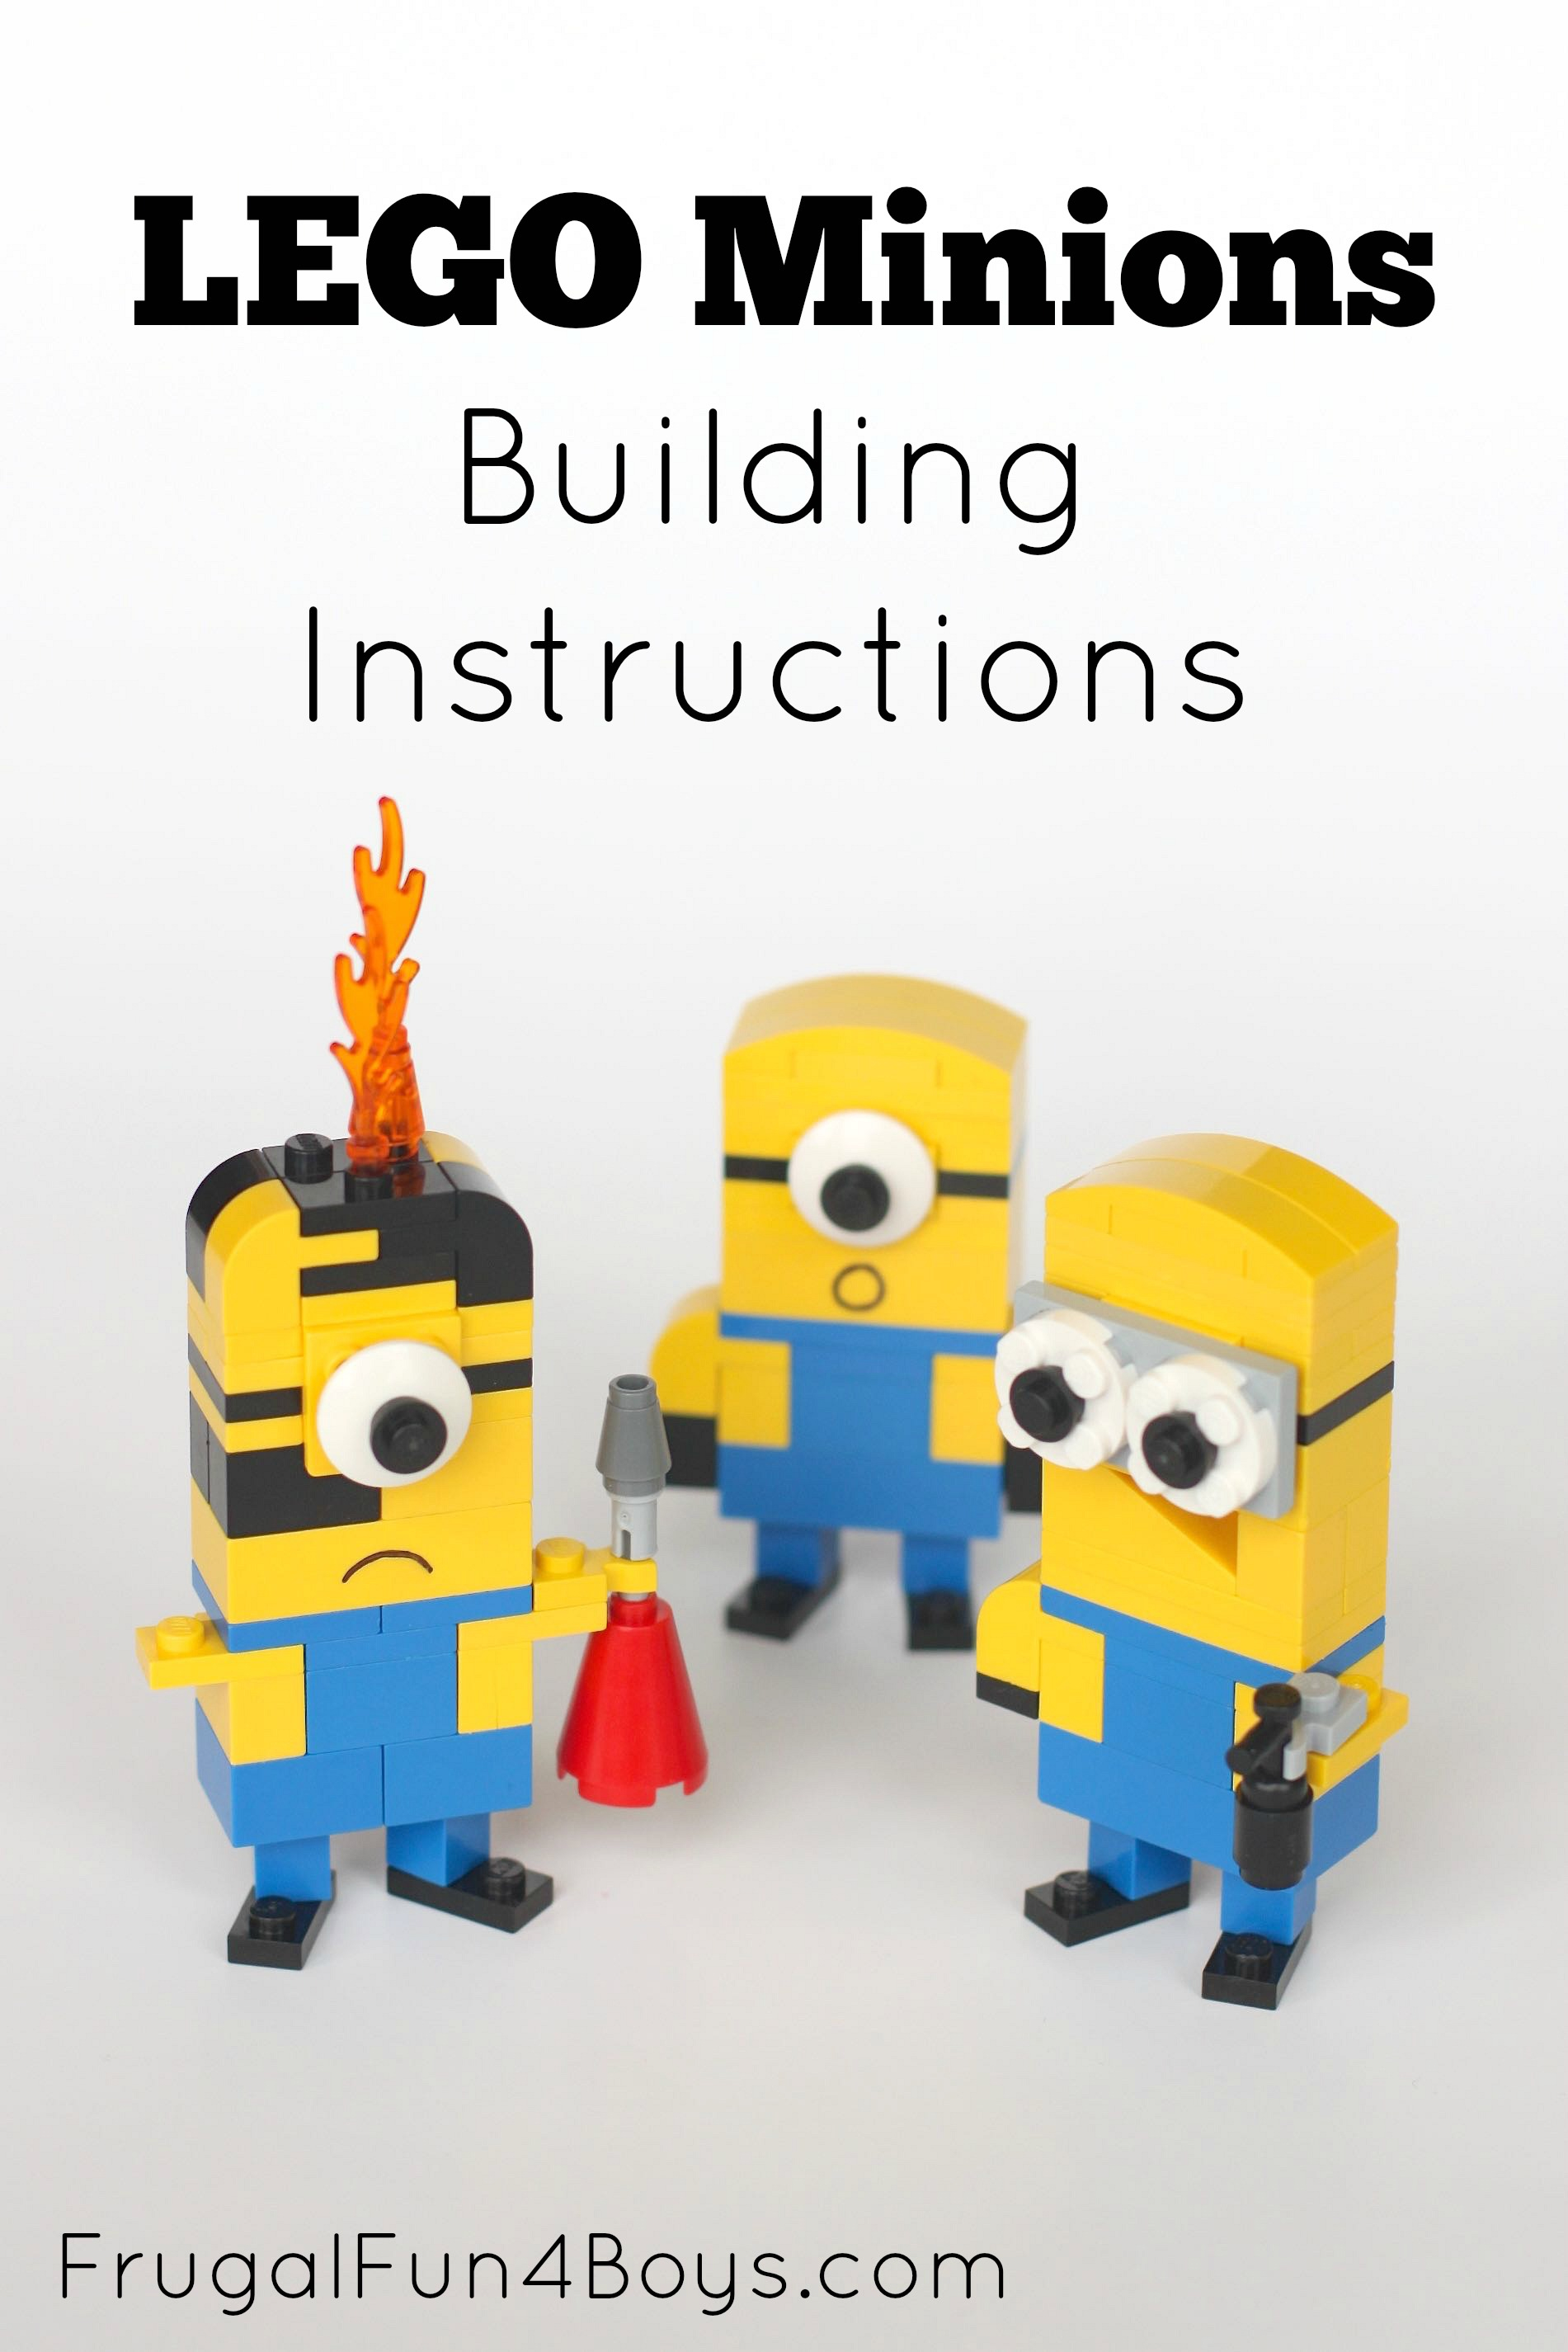 Lego Minions Building Instructions - Frugal Fun For Boys And Girls - Free Printable Lego Instructions